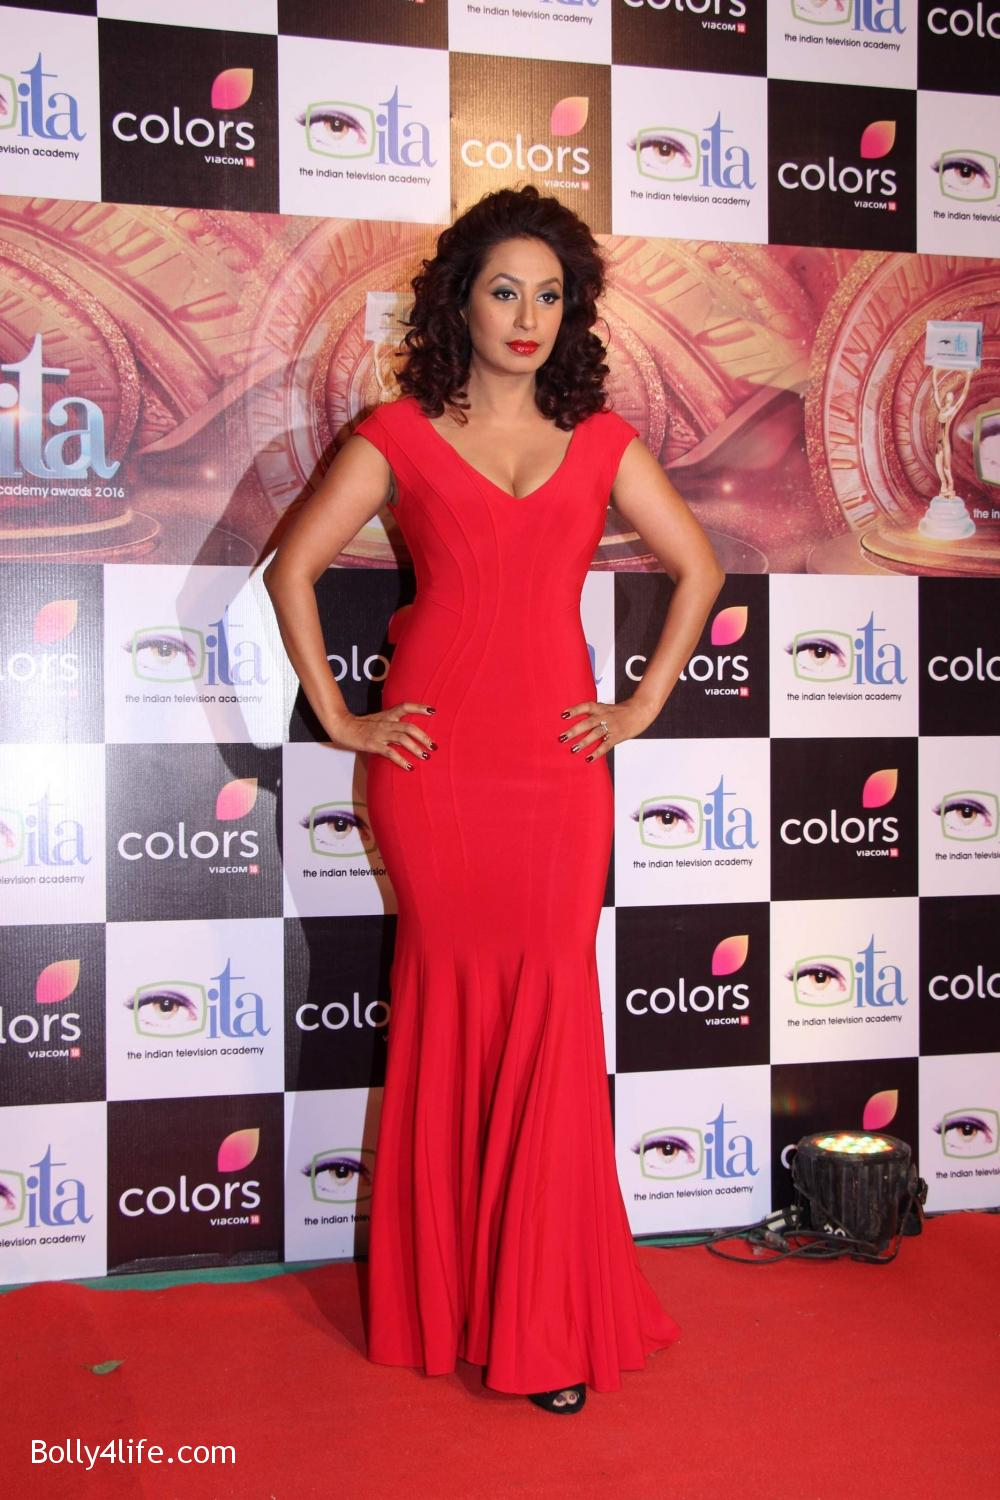 16th-Indian-Television-Academy-Awards-2016-10.jpg